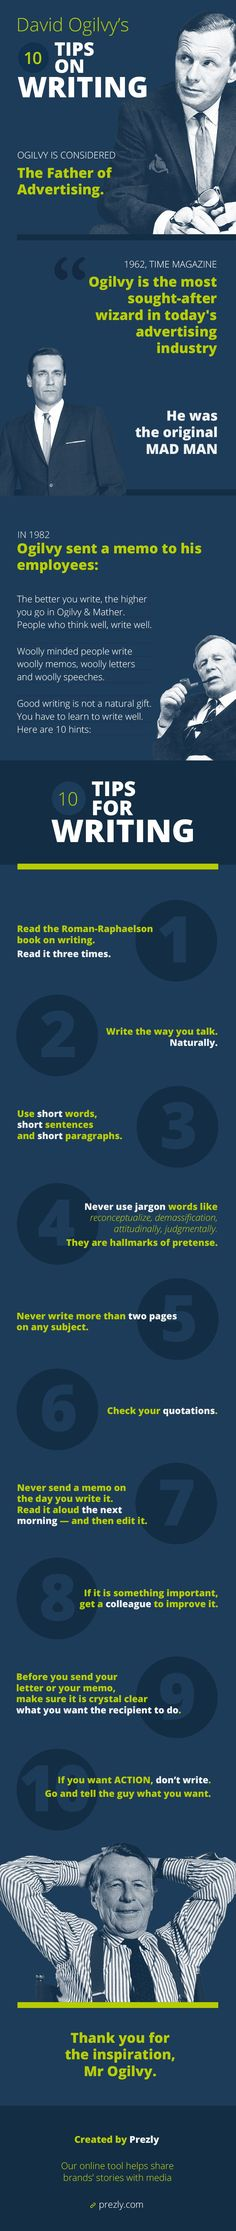 10 writing tips of original mad man David Ogilvy  #infographic #ogilvy #writing